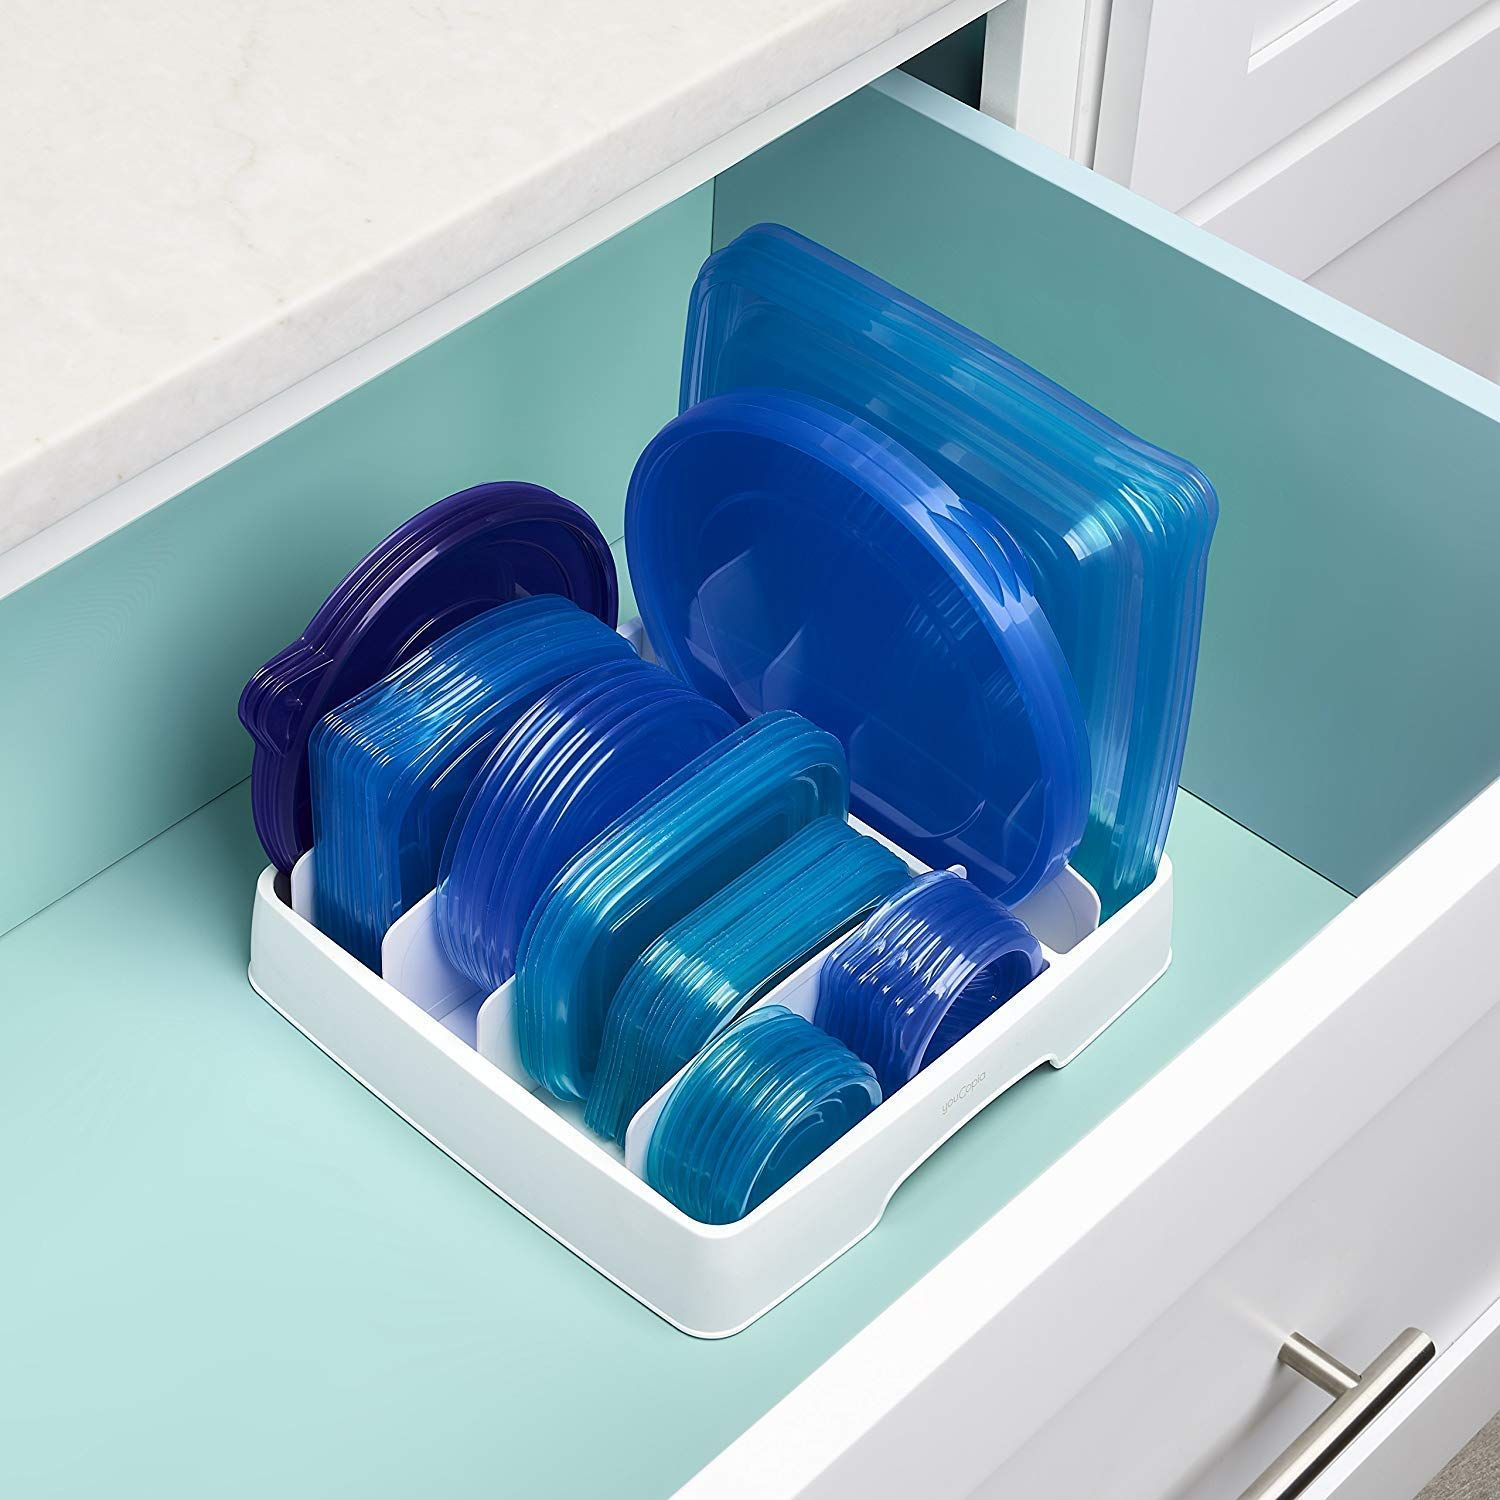 This Food Container Lid Organizer Will Save Your Kitchen Cabinets